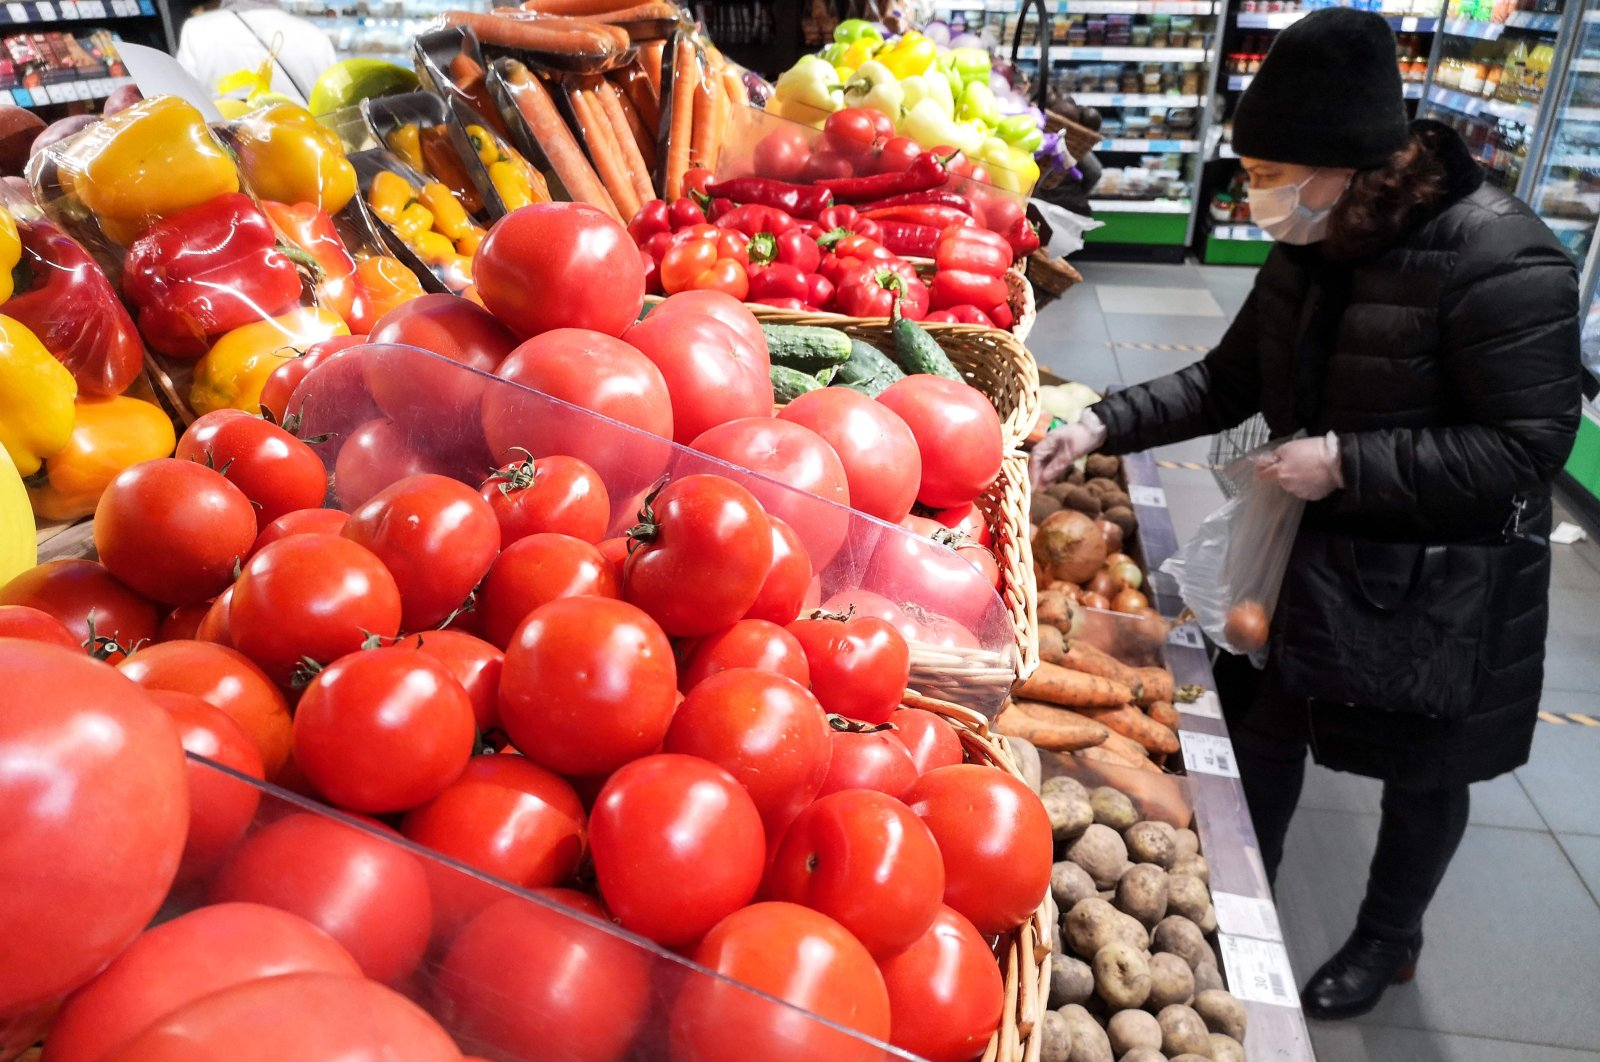 Azerbaijani tomatoes are displayed for sale at a supermarket in Moscow on Dec. 9, 2020. (AFP Photo)